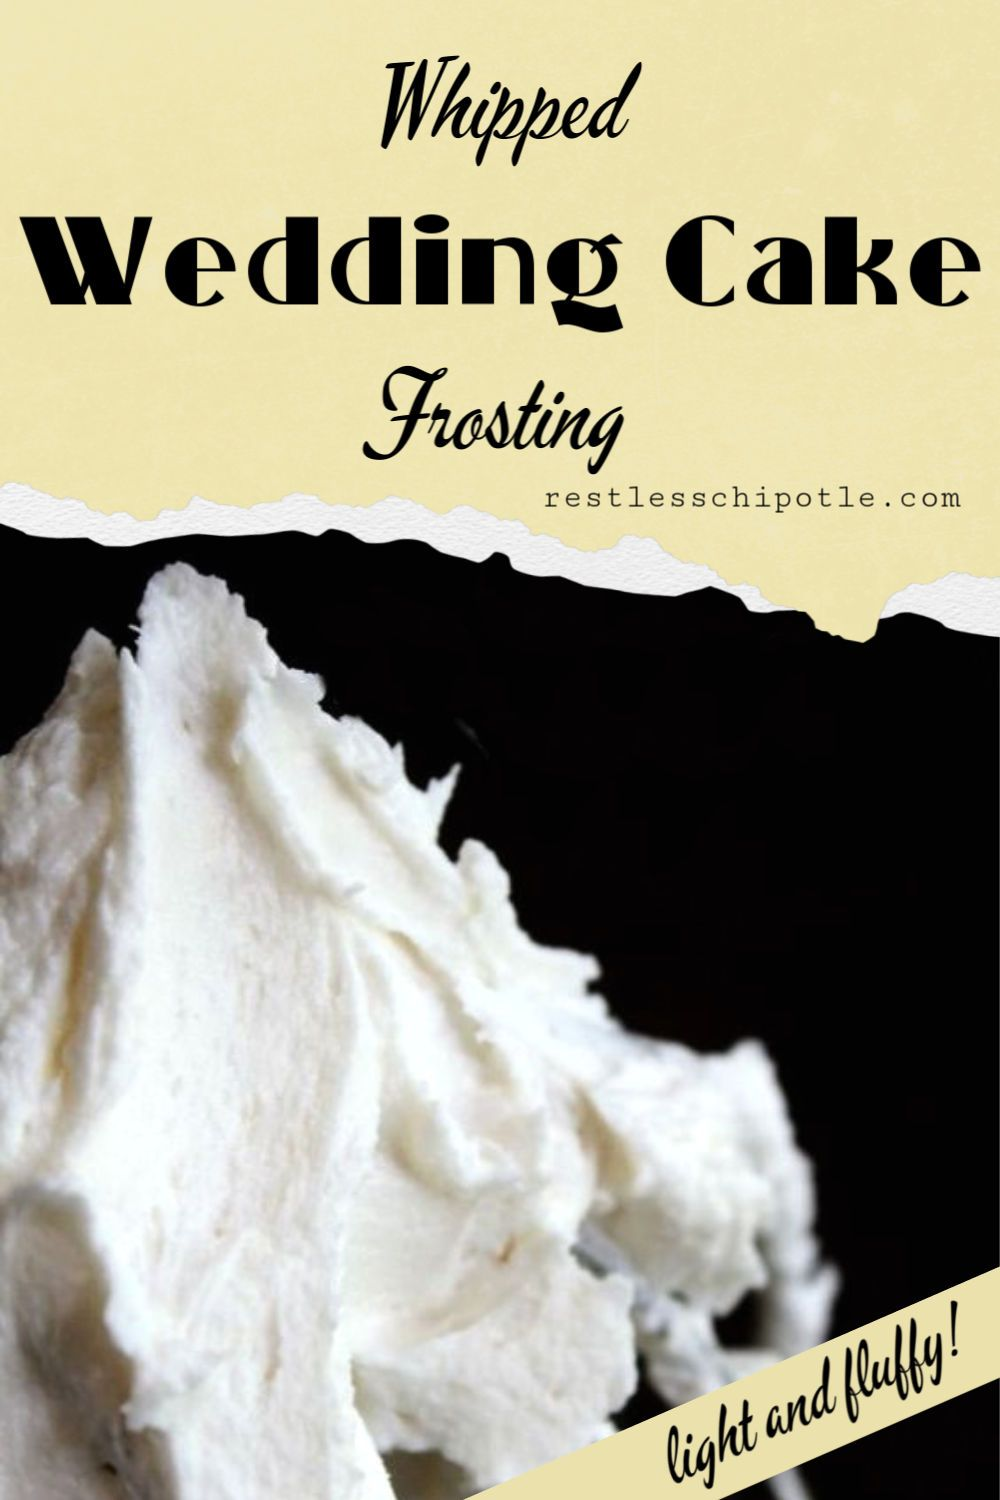 Whipped Wedding Cake Frosting